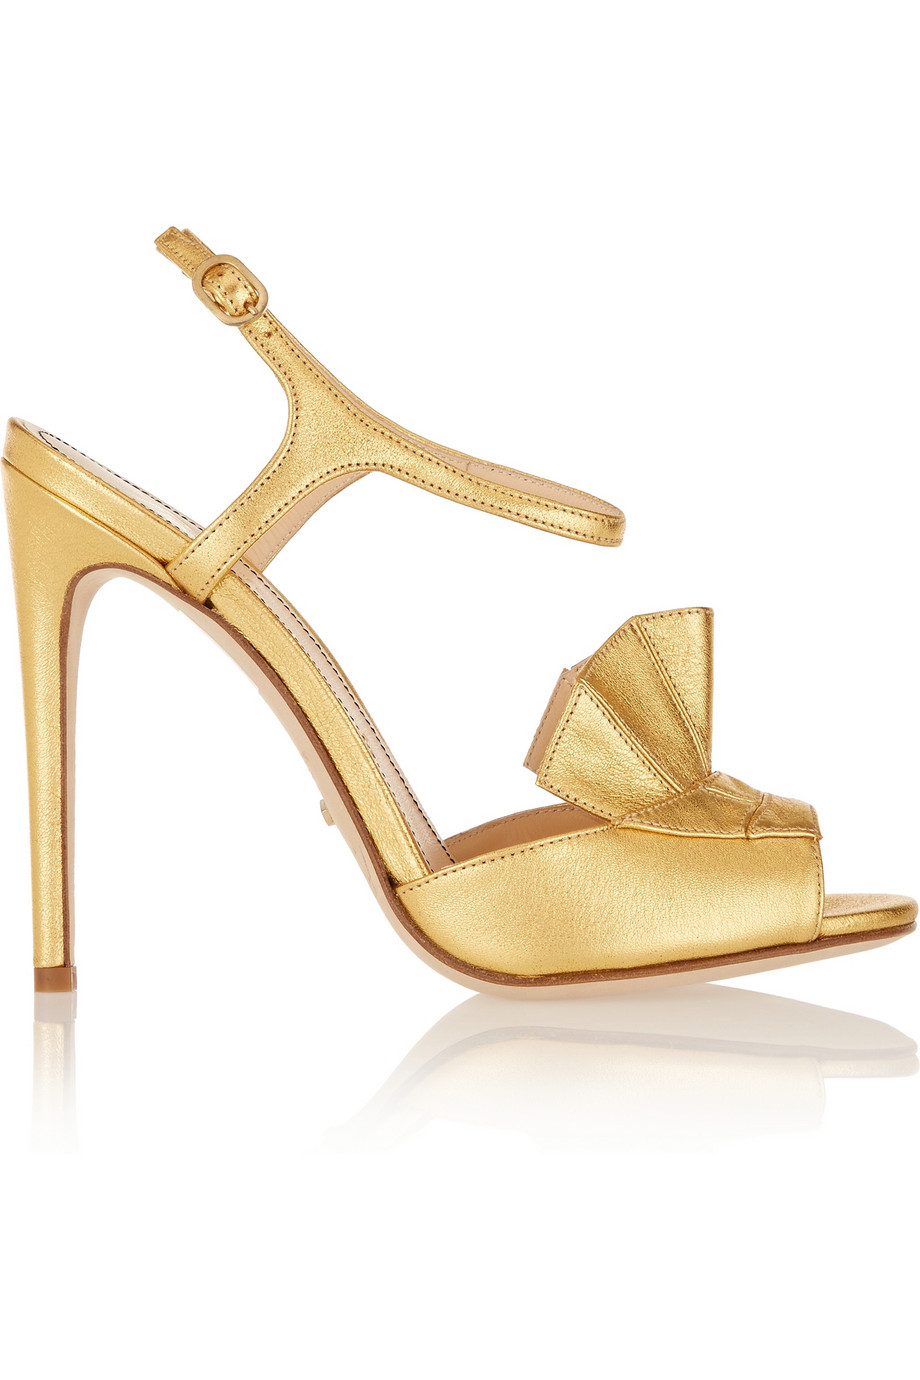 Jerome c. rousseau mills ruffled metallic leather sandals – 80% at the outnet.com